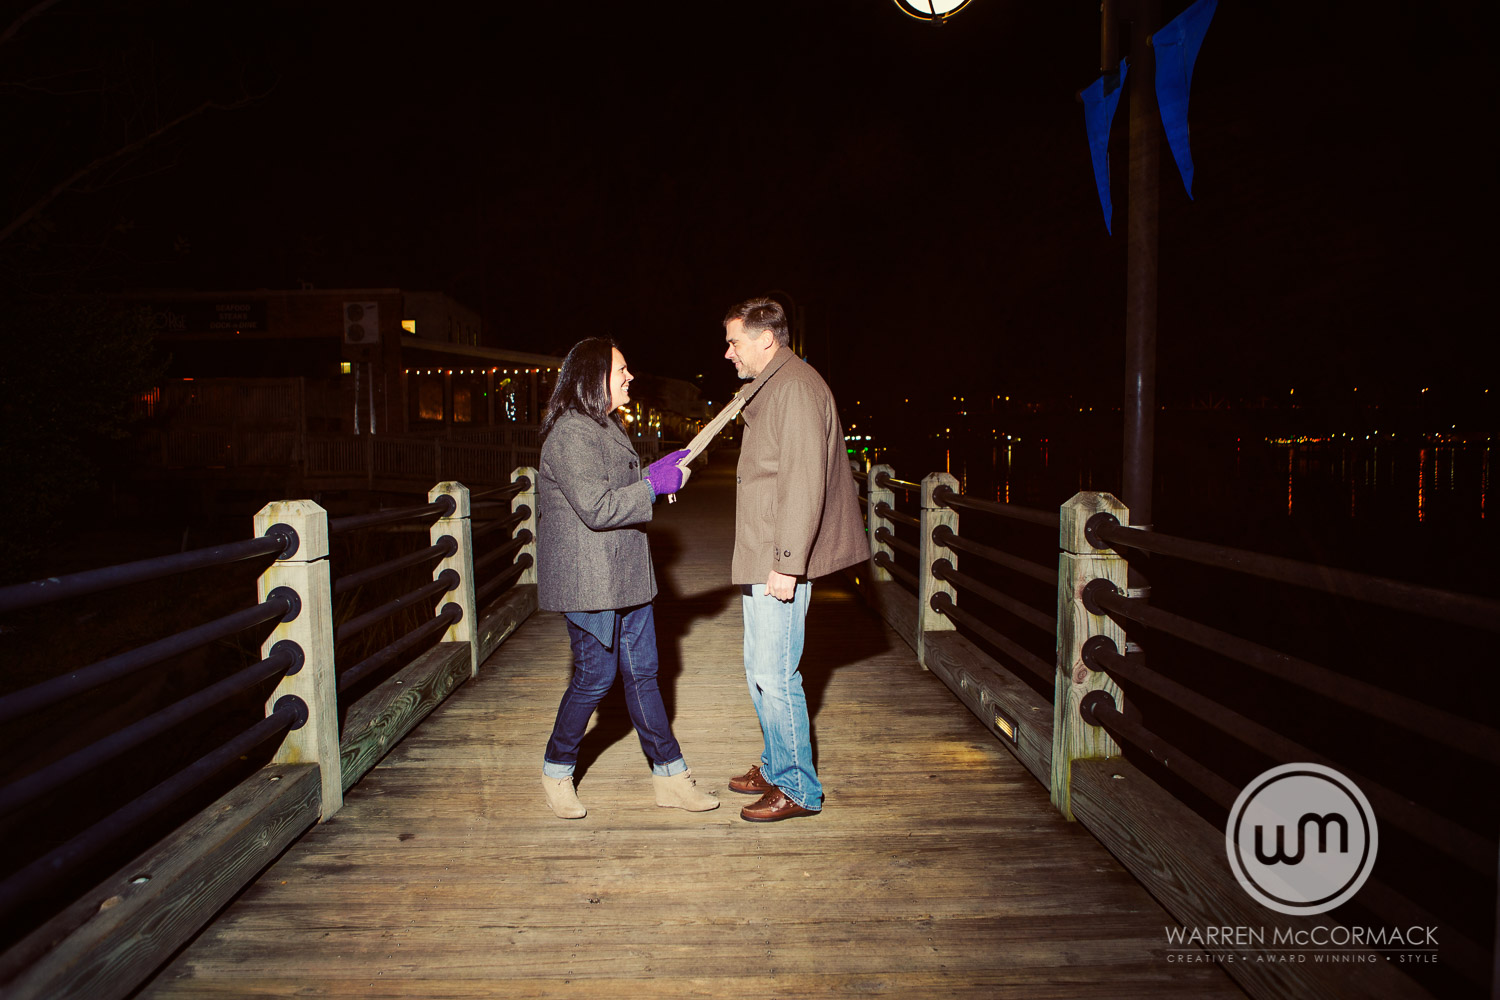 wilmington_engagement_photographer_0027.jpg